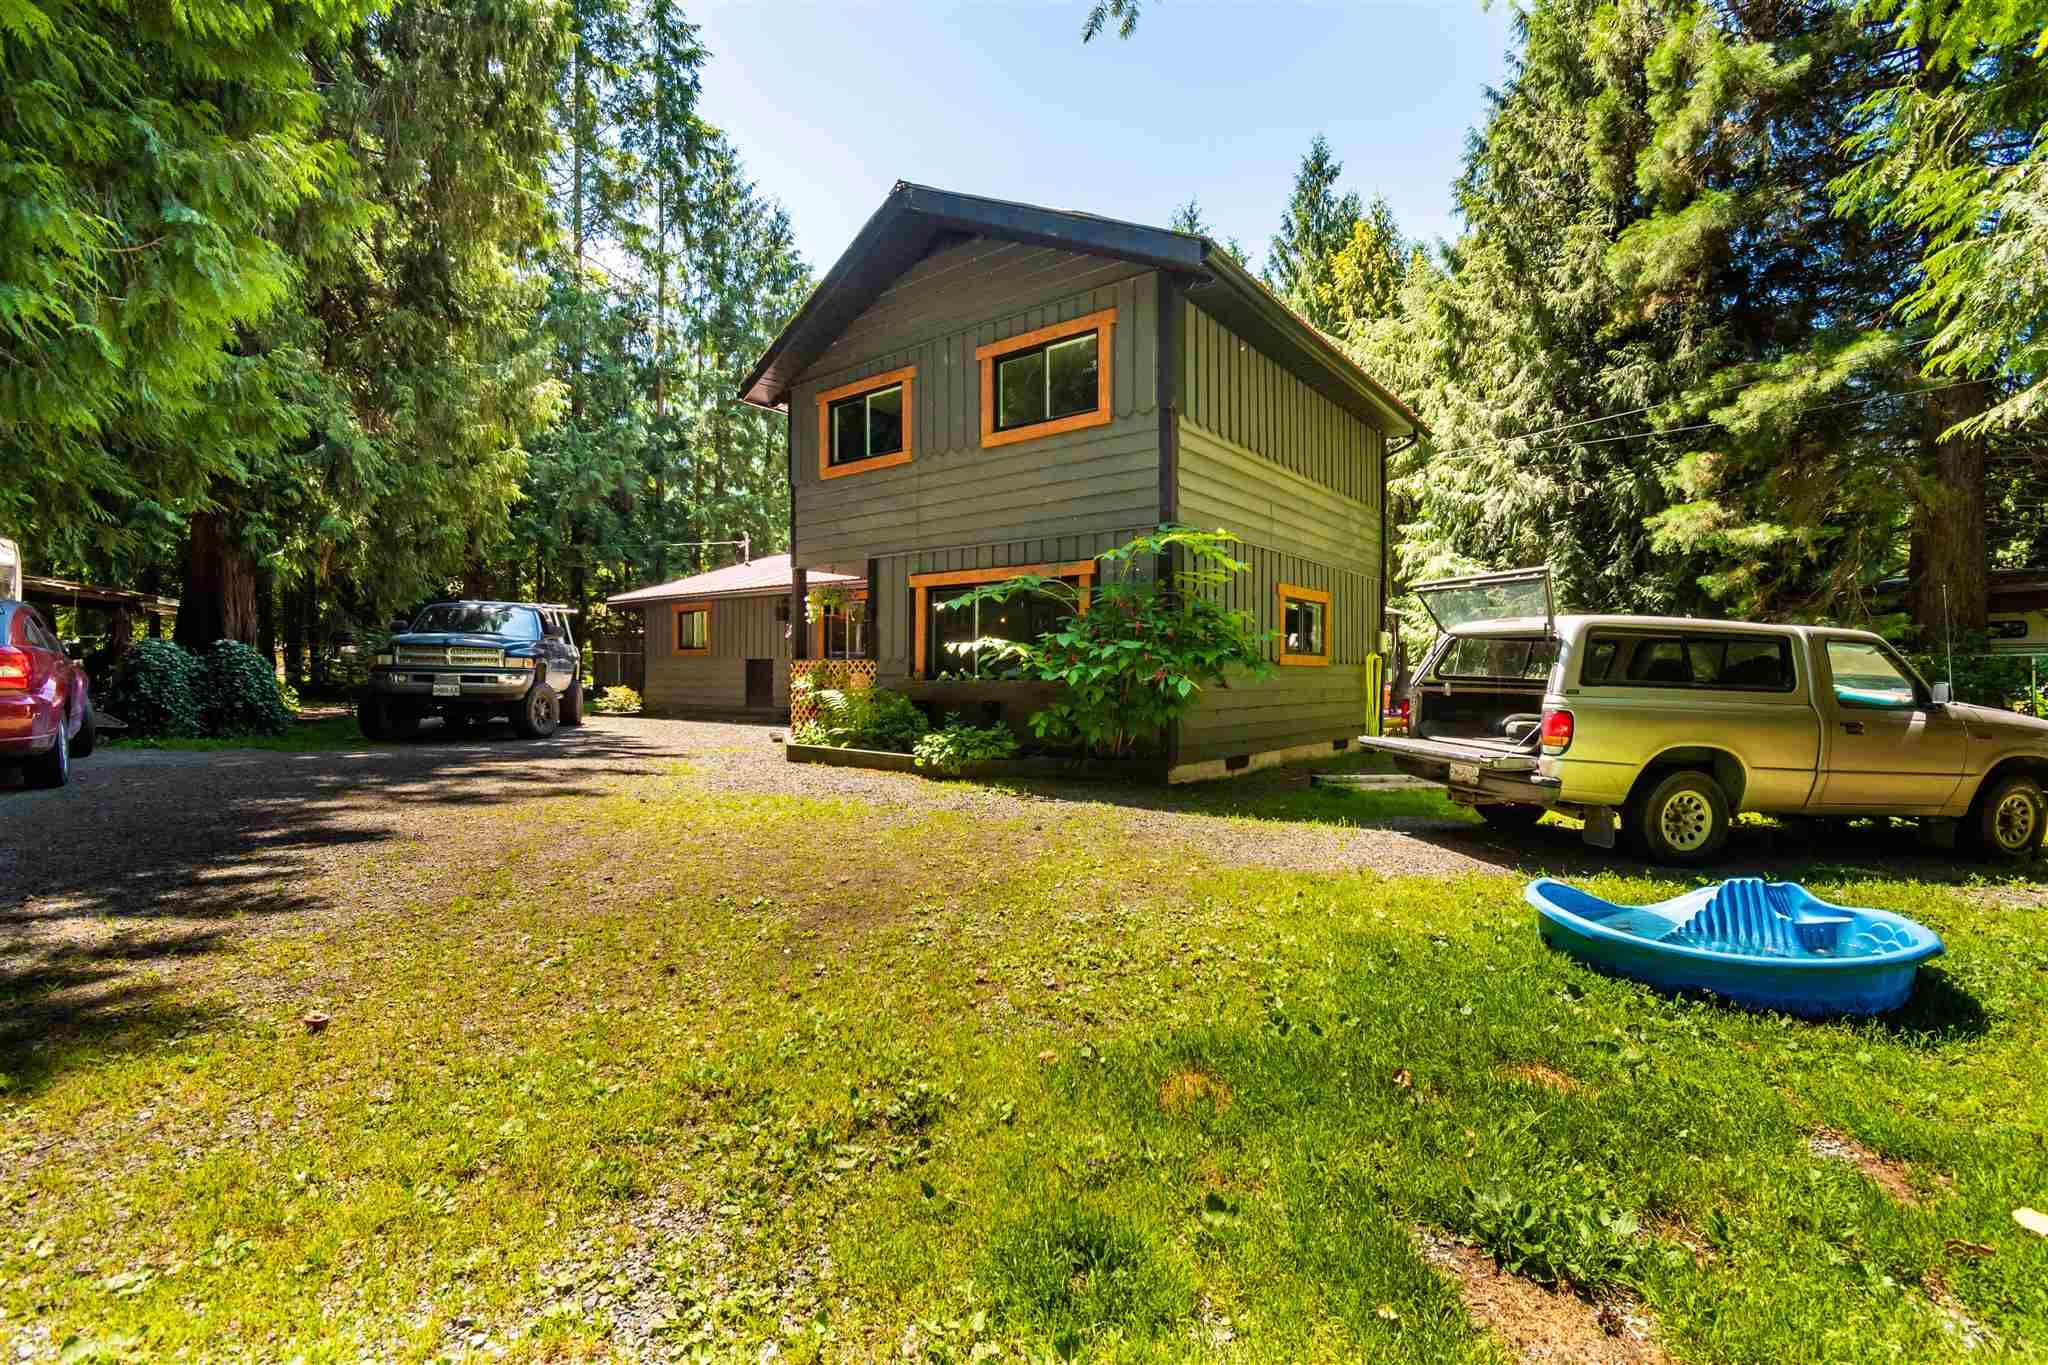 Main Photo: 49280 BELL ACRES Road in Chilliwack: Chilliwack River Valley House for sale (Sardis)  : MLS®# R2595742